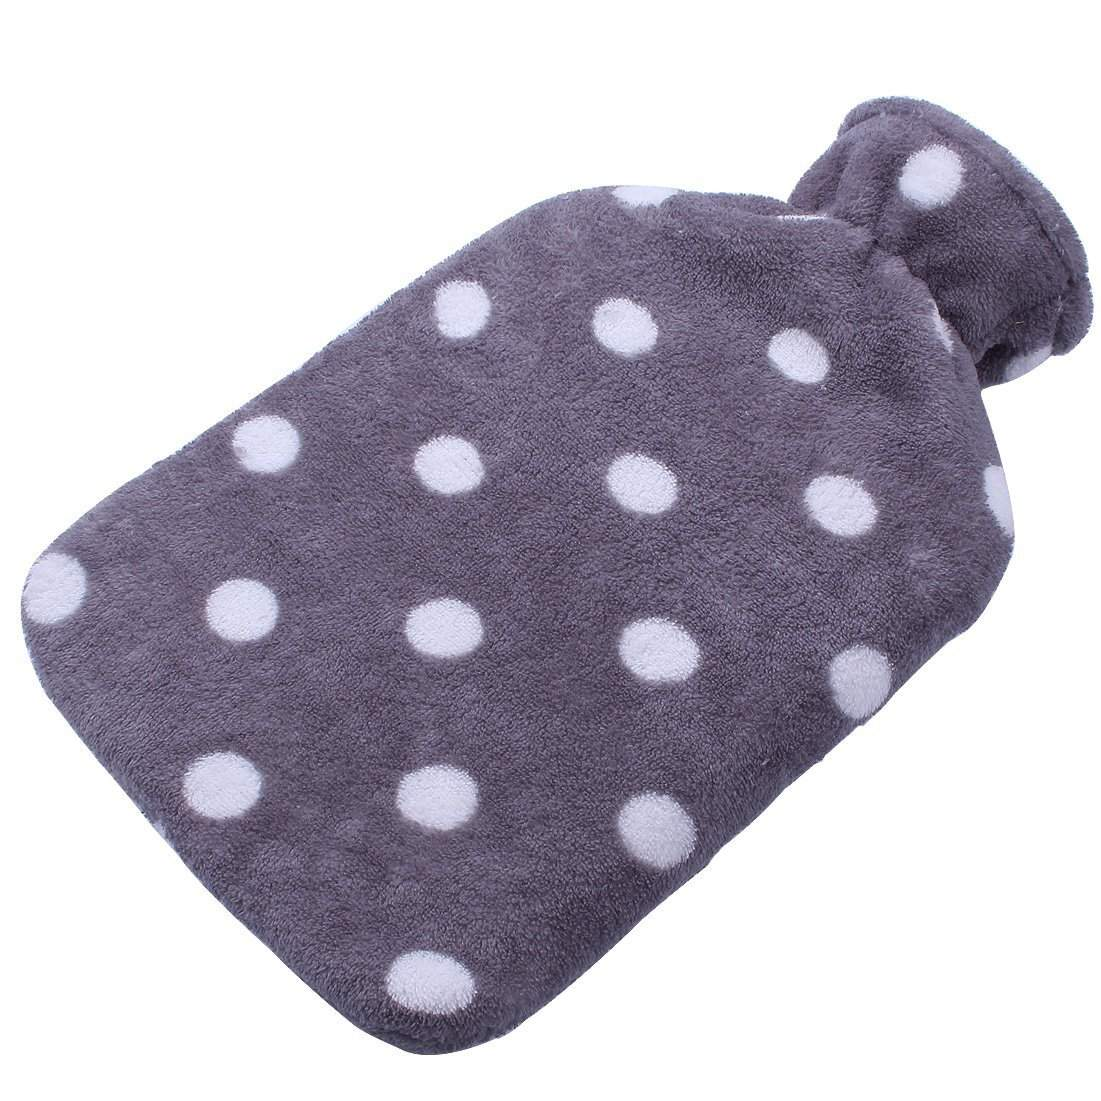 Use a hot water bottle with COLD water to chase away summer heat.